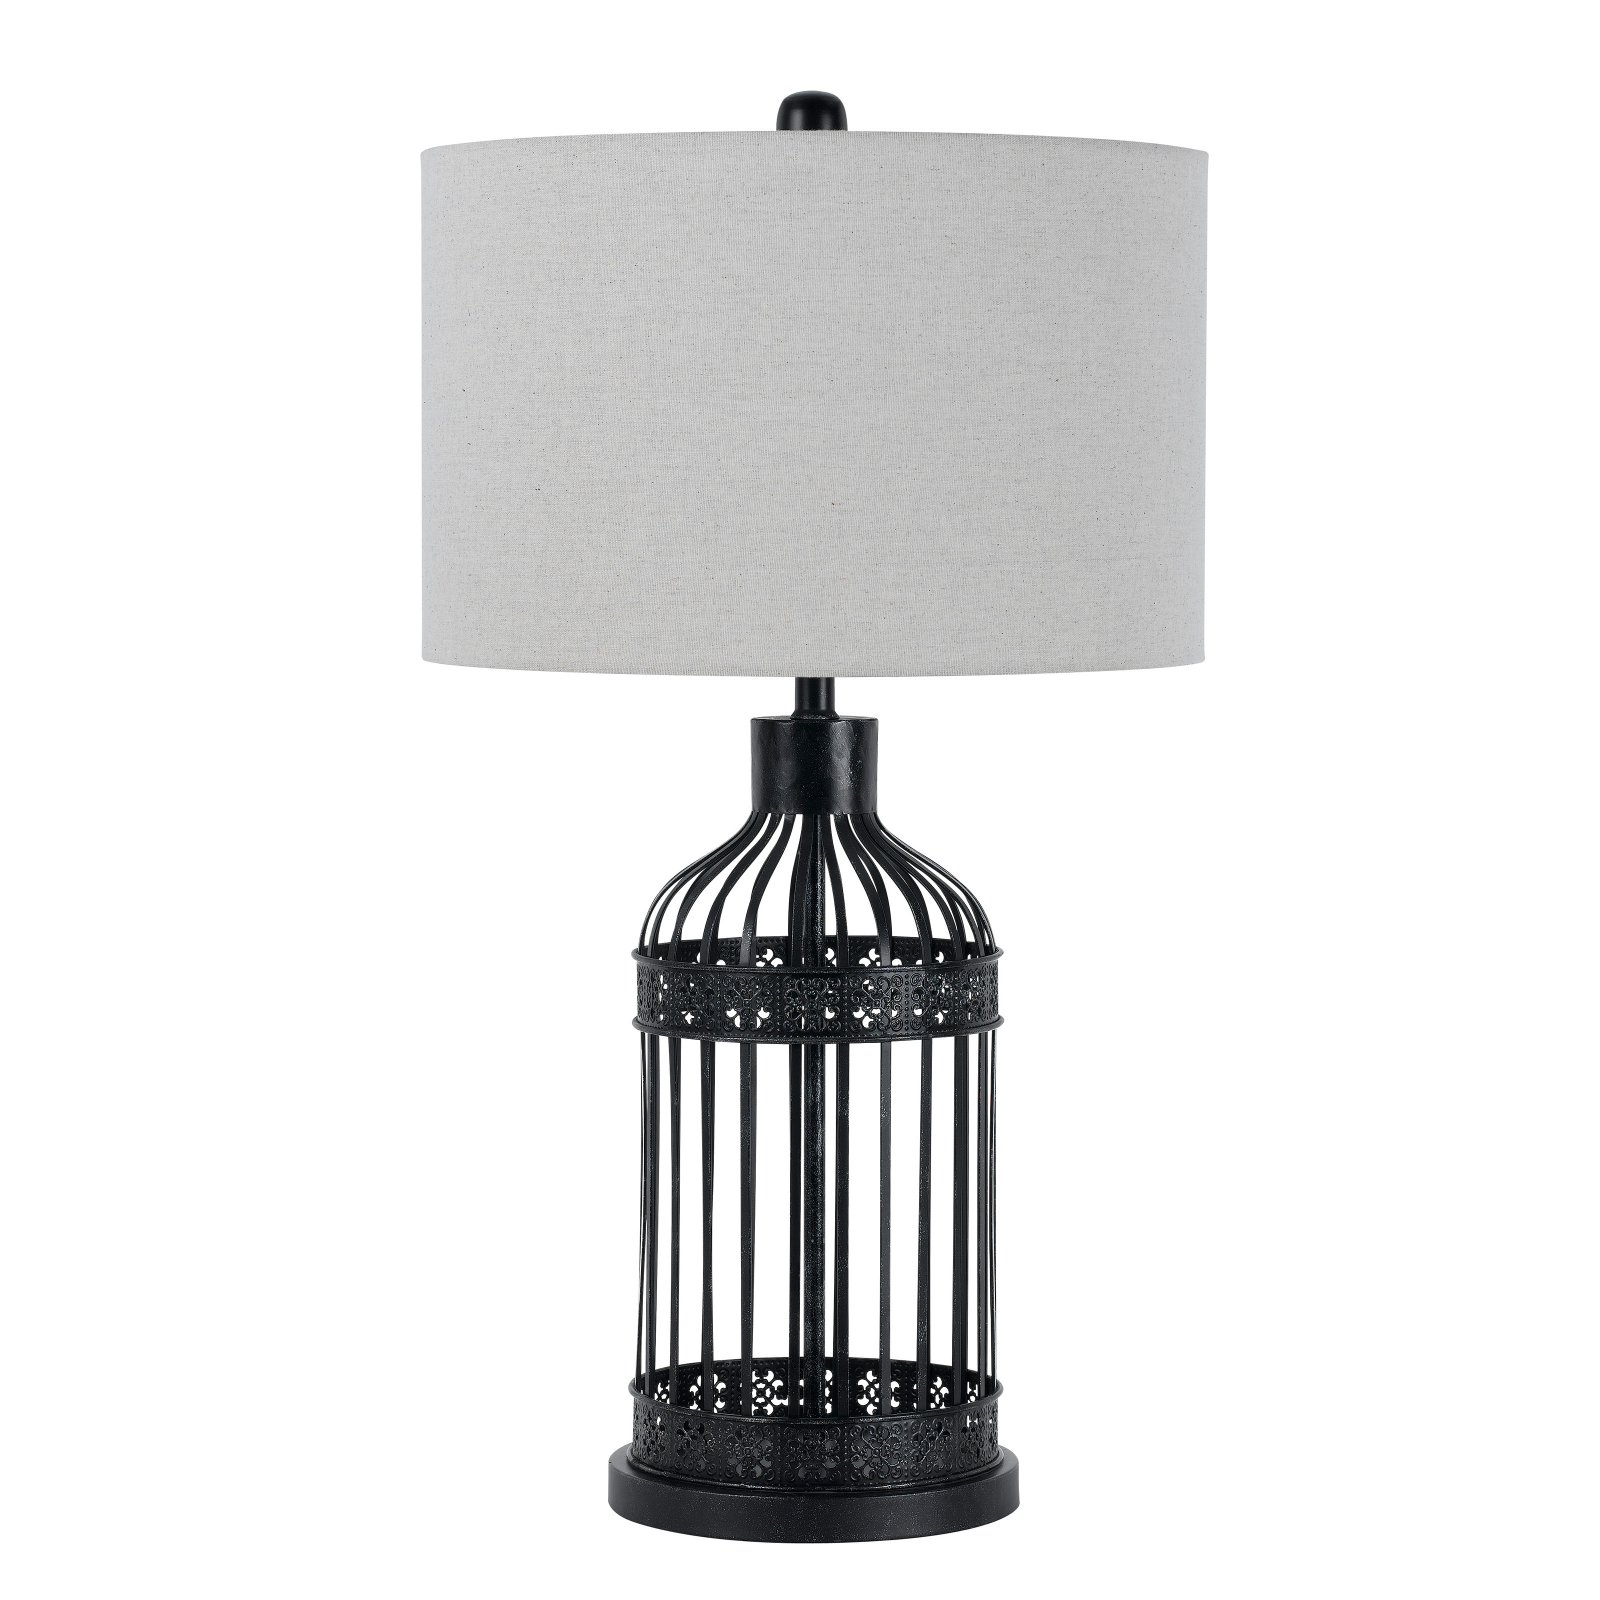 Cal Lighting Birdcage Table Lamp by